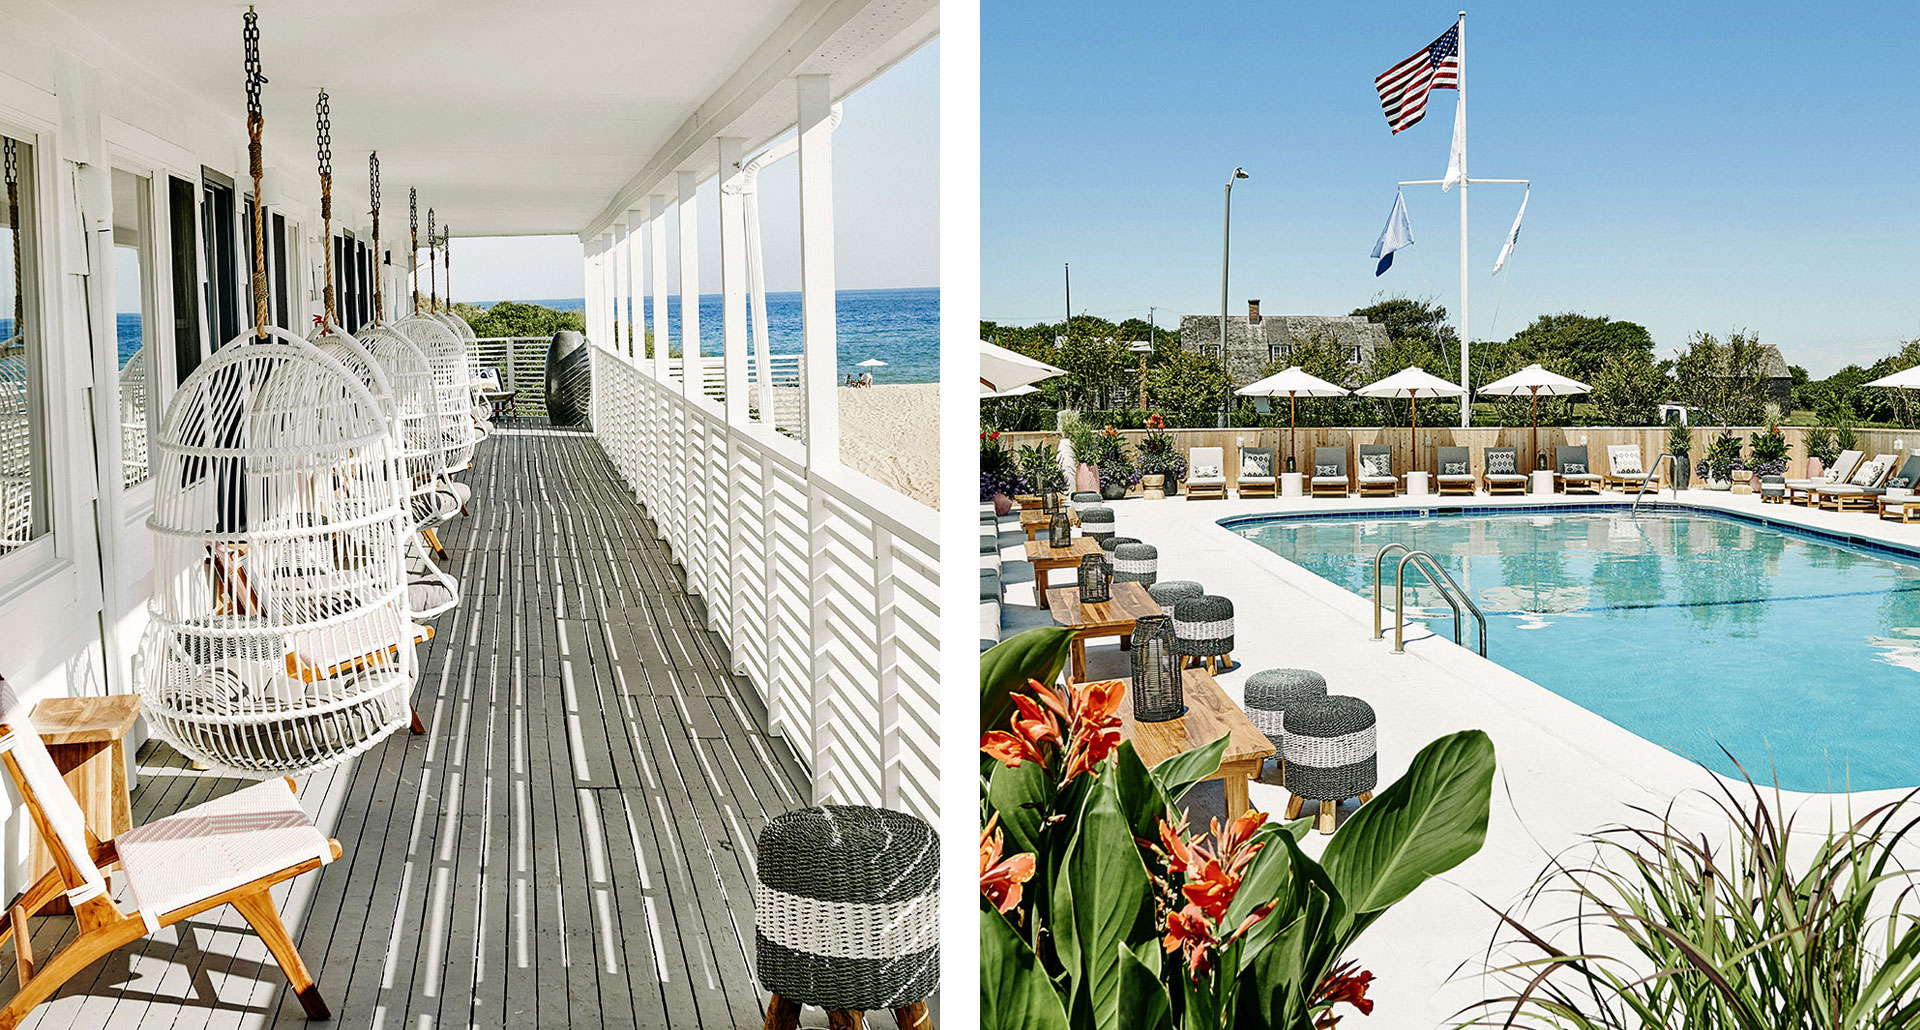 Hero Beach Club - boutique hotel in Montauk